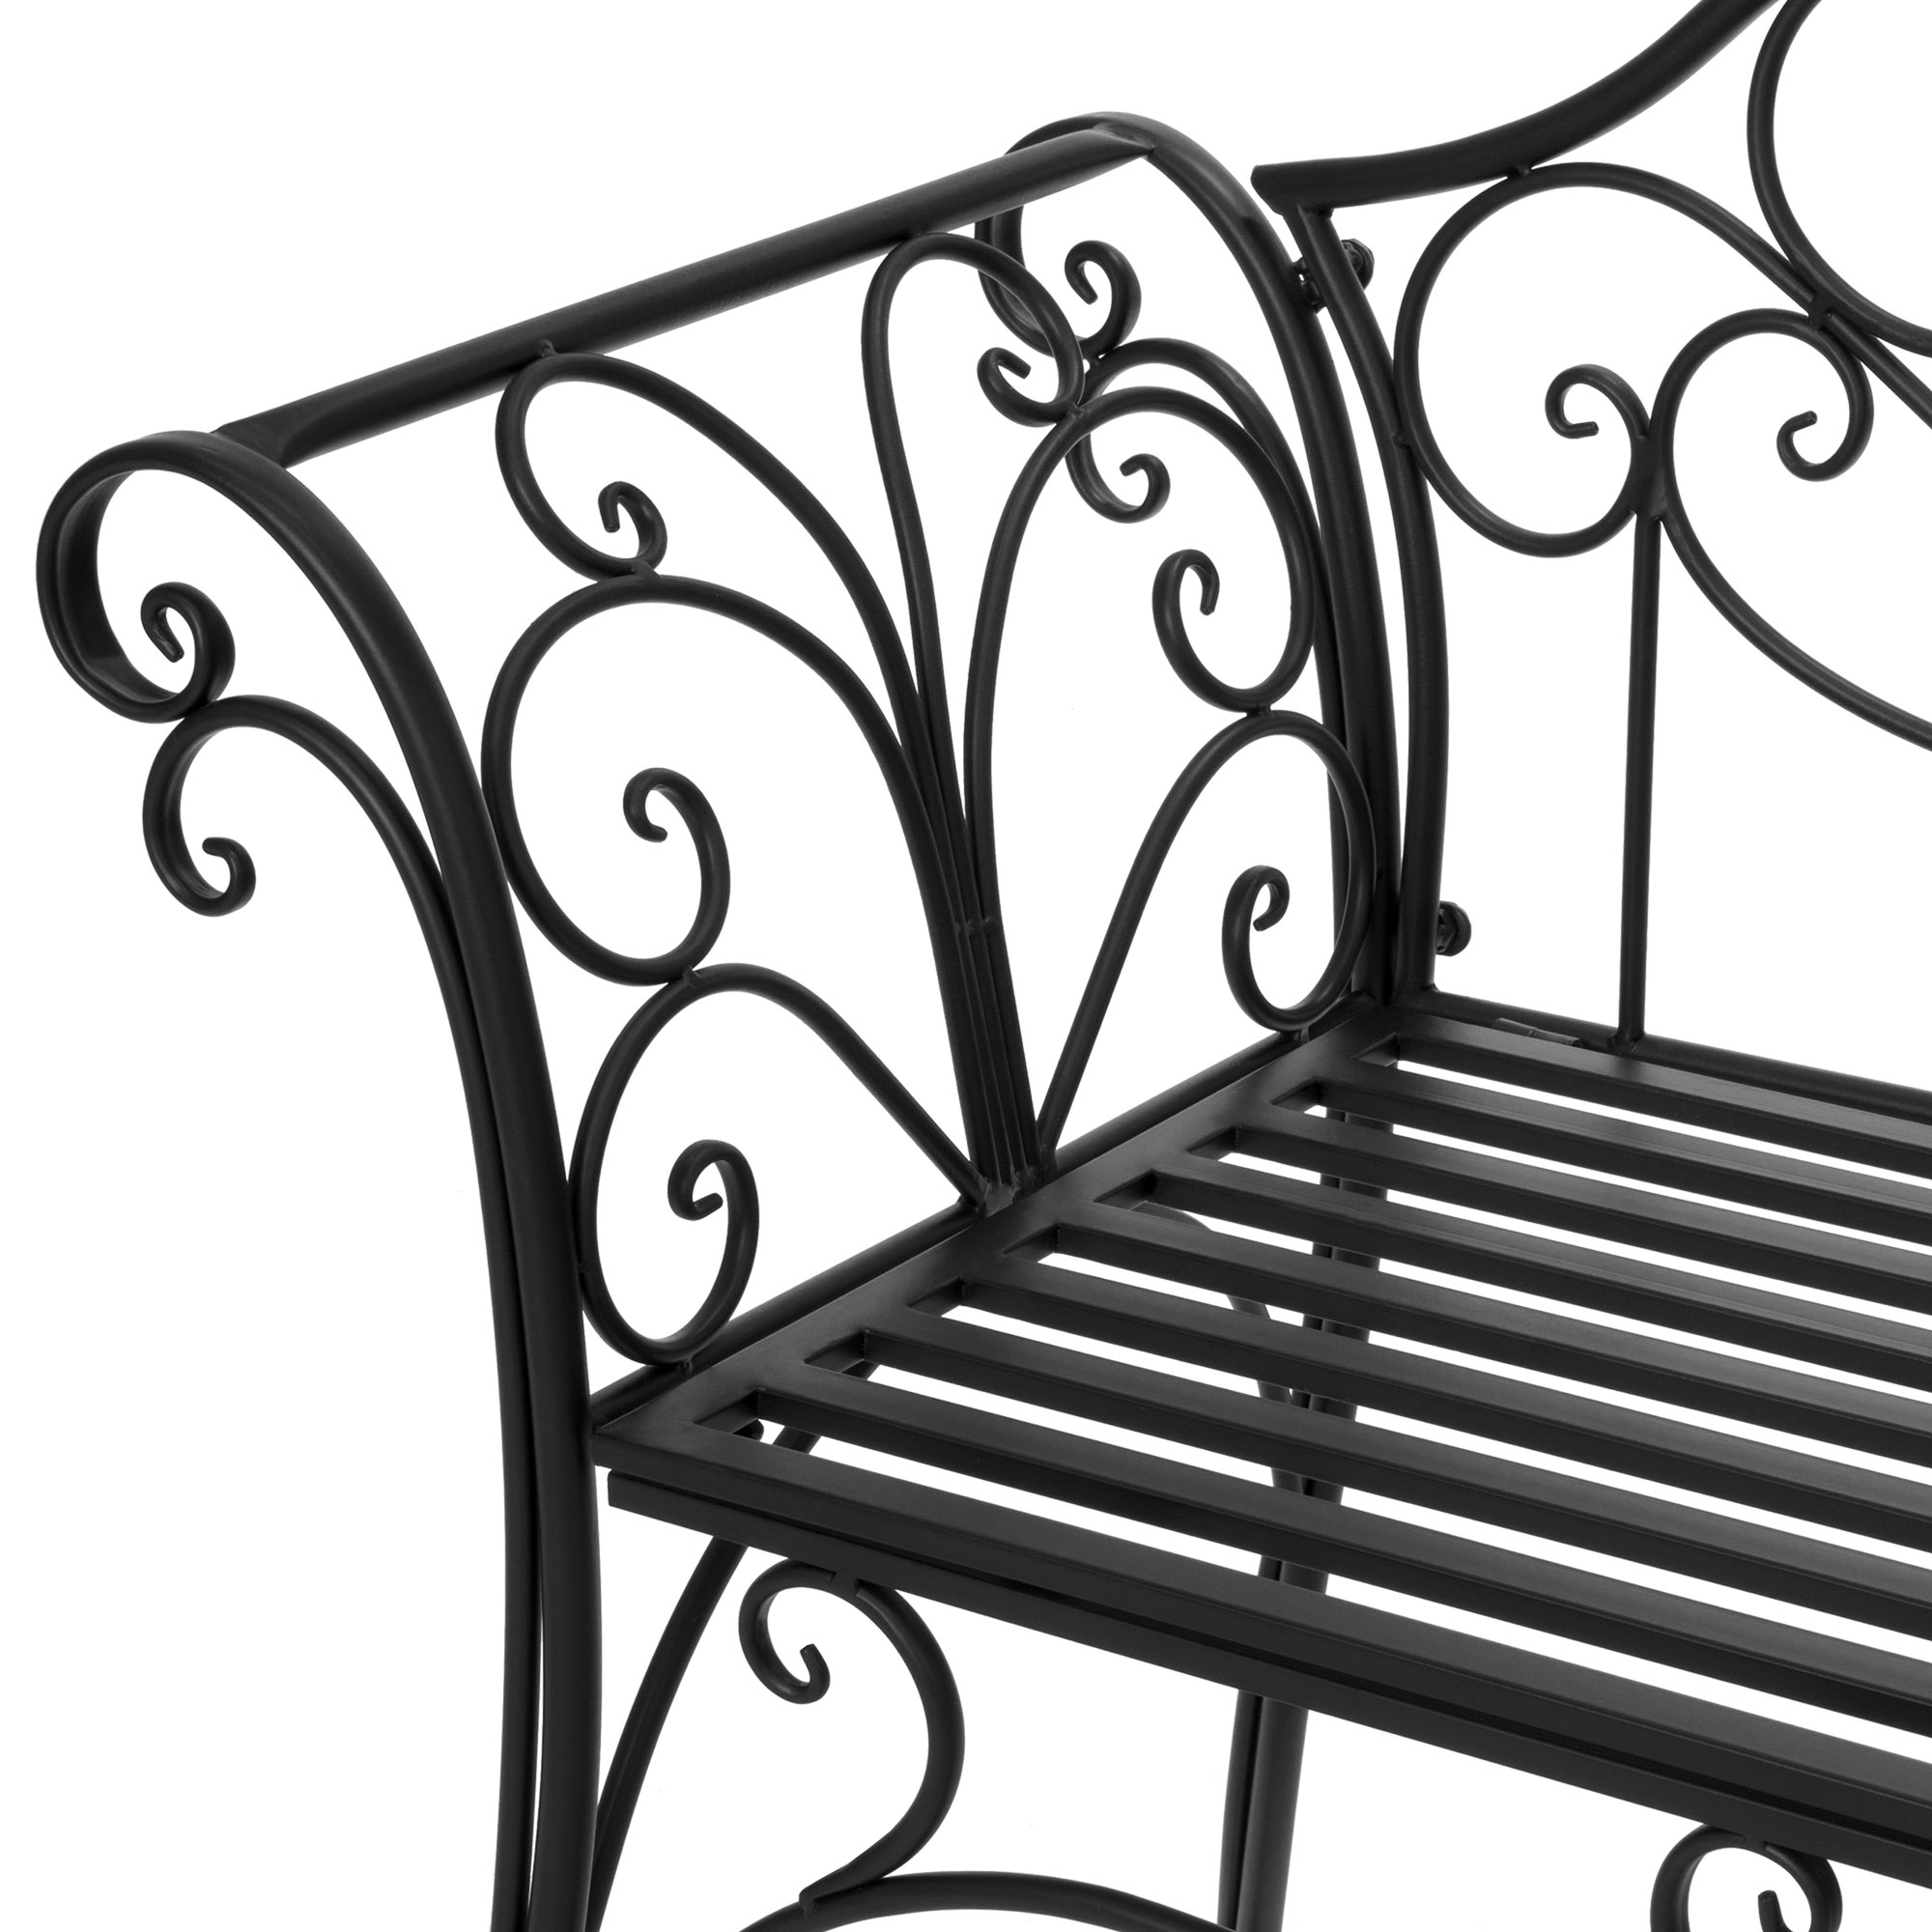 Most Current Swing Chair 2 Person Garden Bench 52 Inch Decorative Scroll Intended For 2 Person Black Wood Outdoor Swings (View 17 of 25)